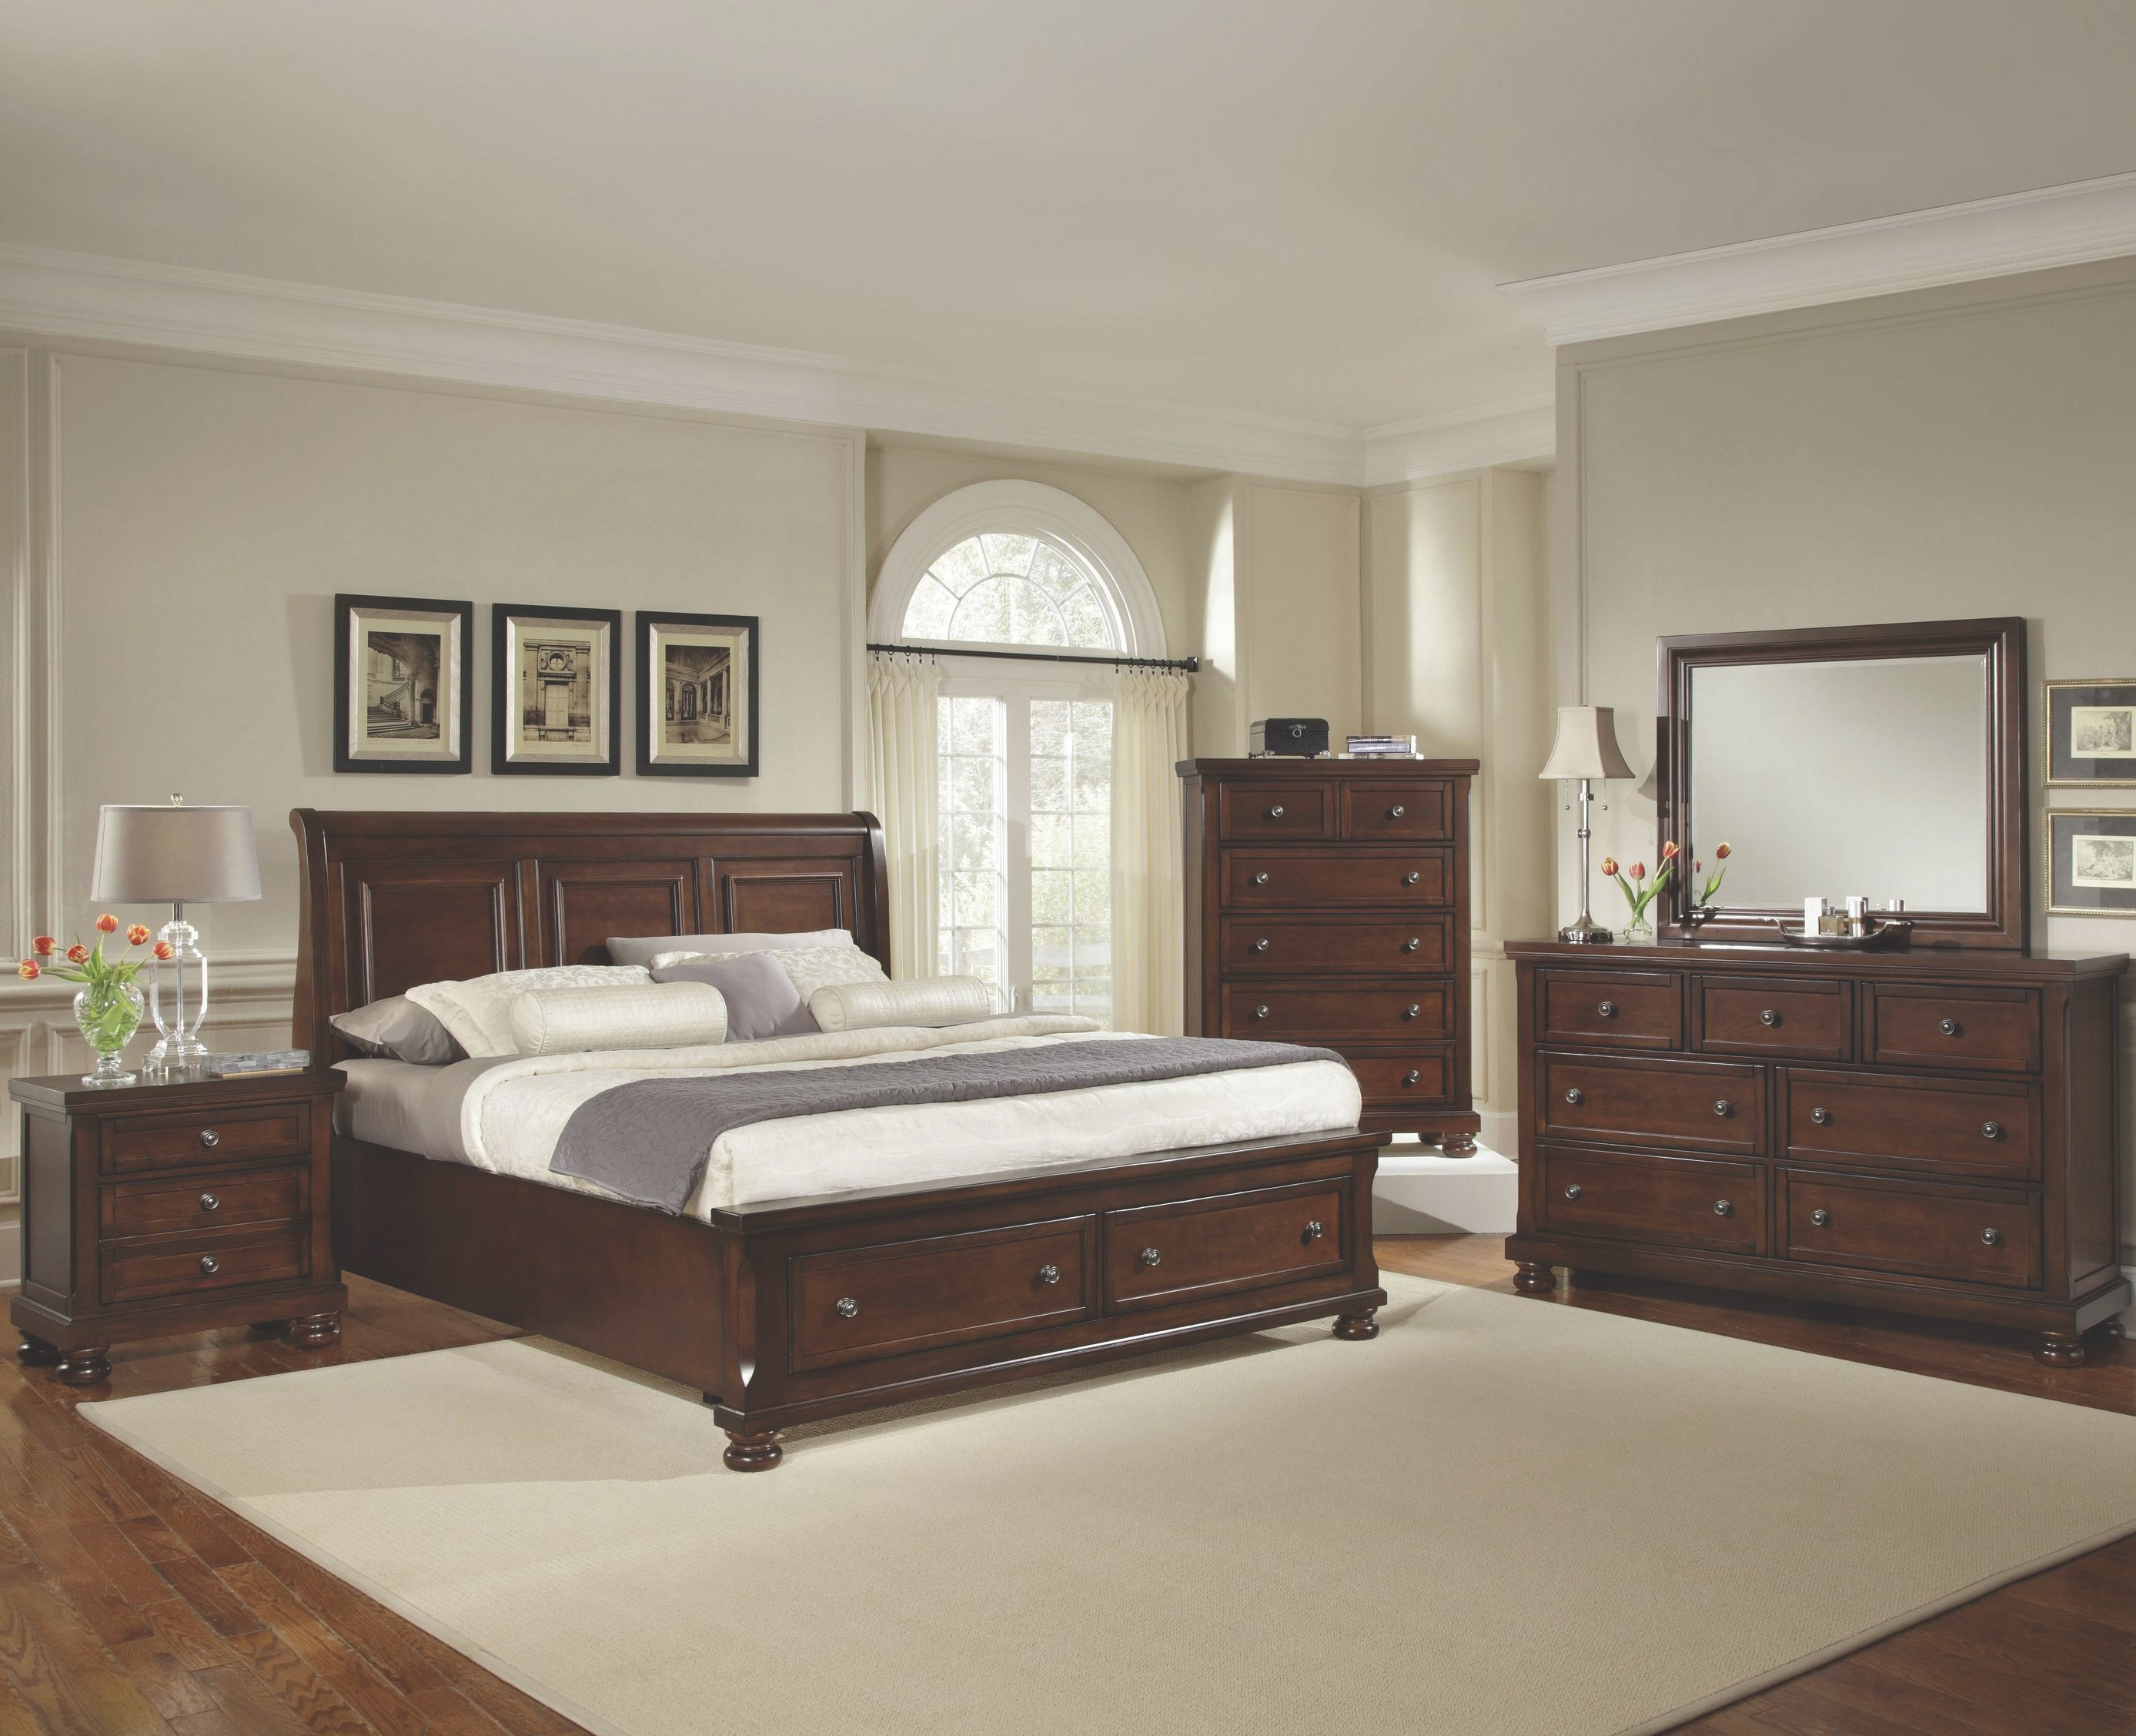 Bassett Furniture Reviews Bbb Bassett Furniture Industry